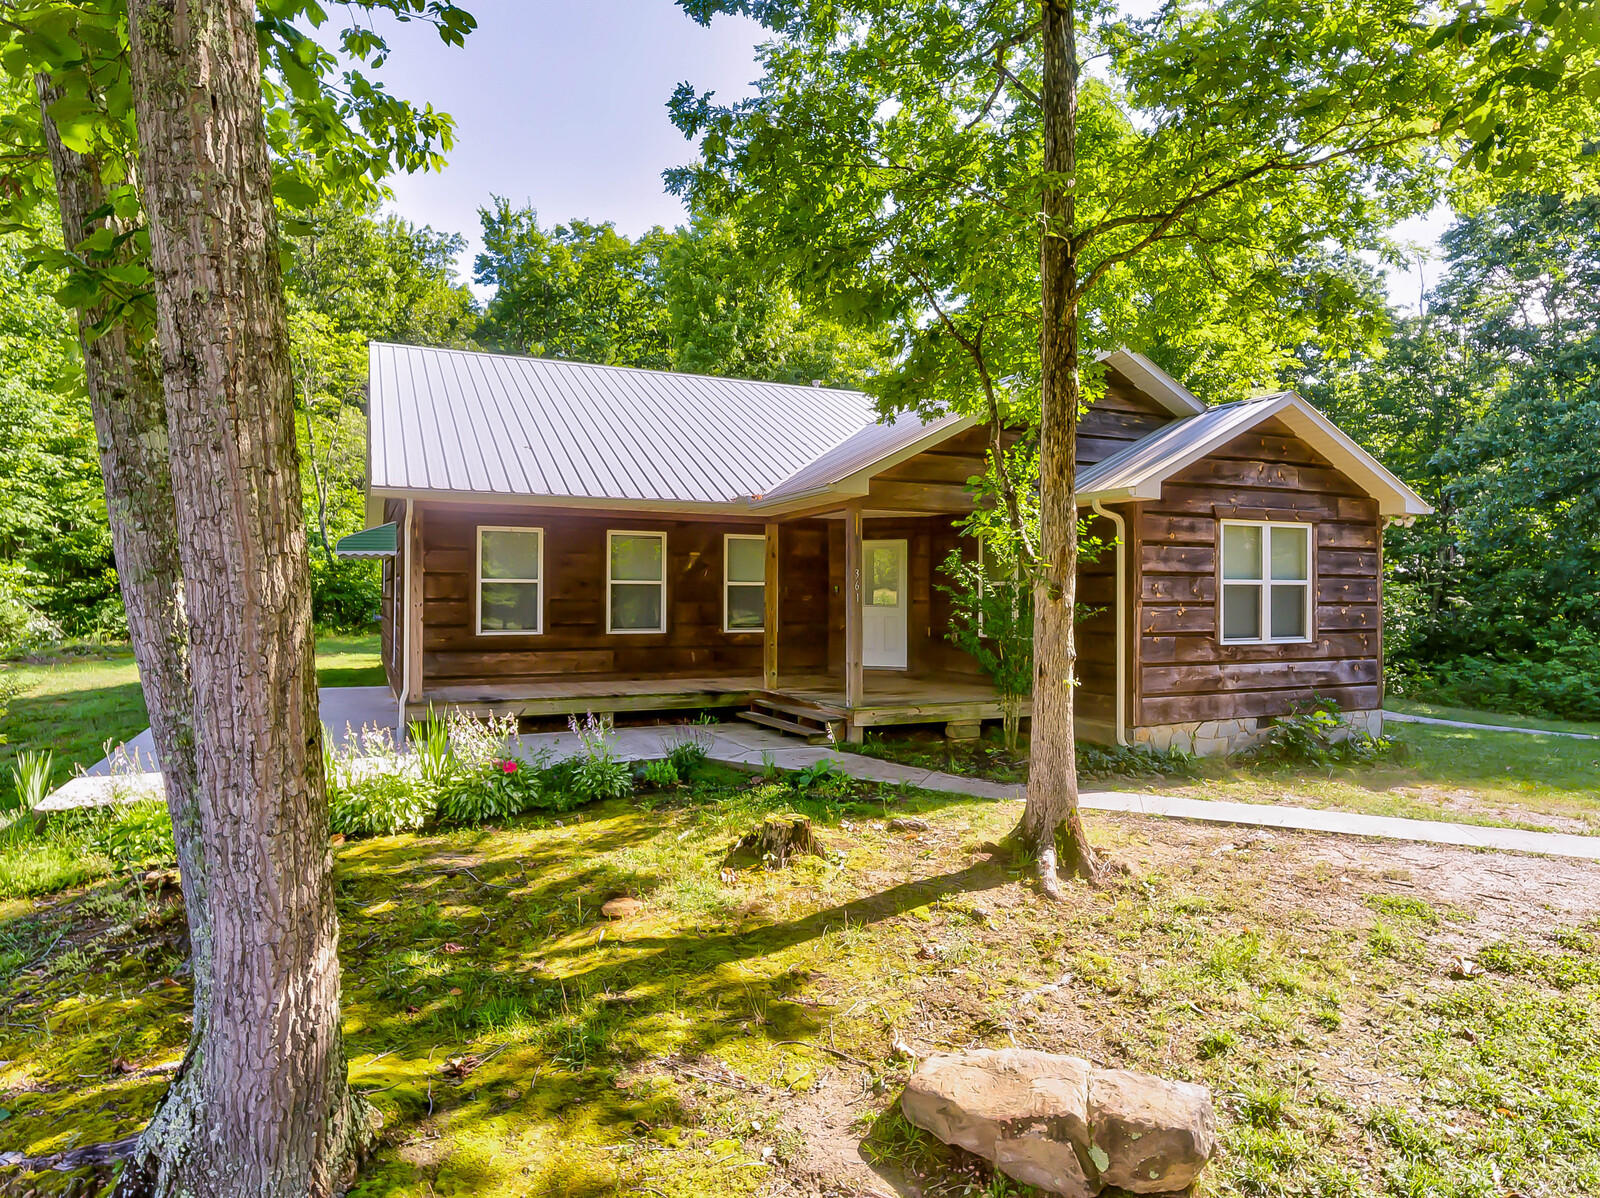 361 Zac, Sunbright, Tennessee, United States 37872, 3 Bedrooms Bedrooms, ,2 BathroomsBathrooms,Single Family,For Sale,Zac,1121271